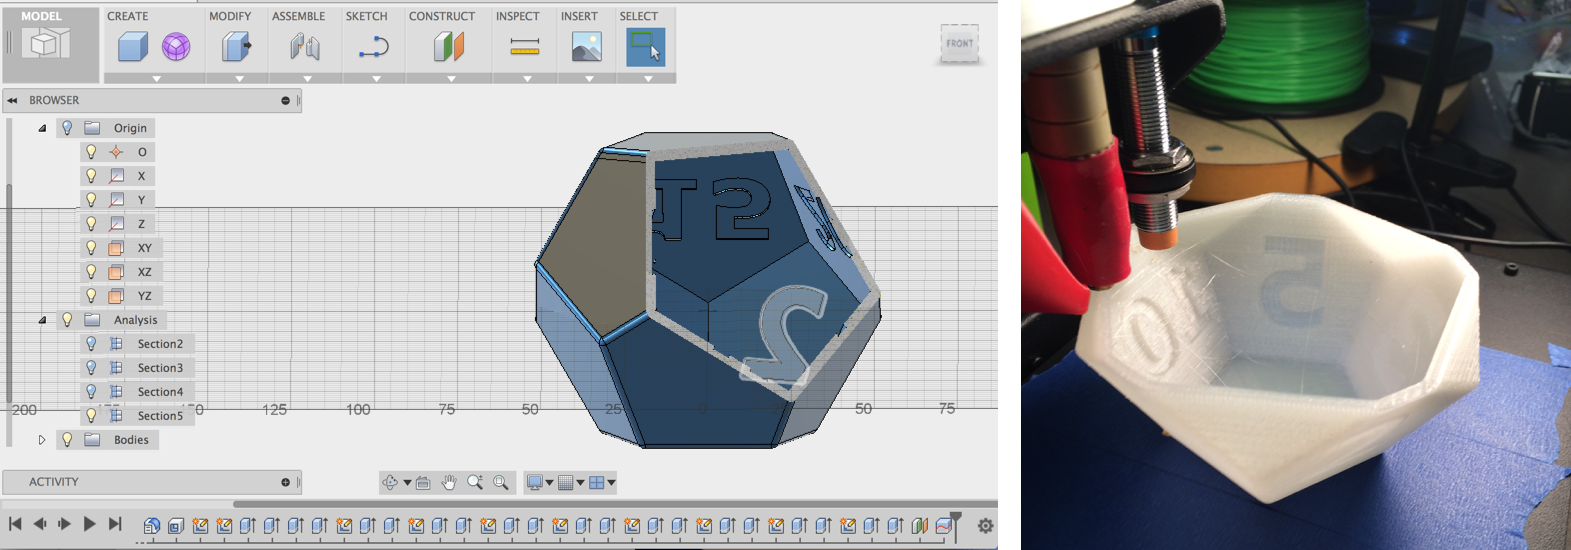 DodecaTimer: 3D Design and 3D Printing